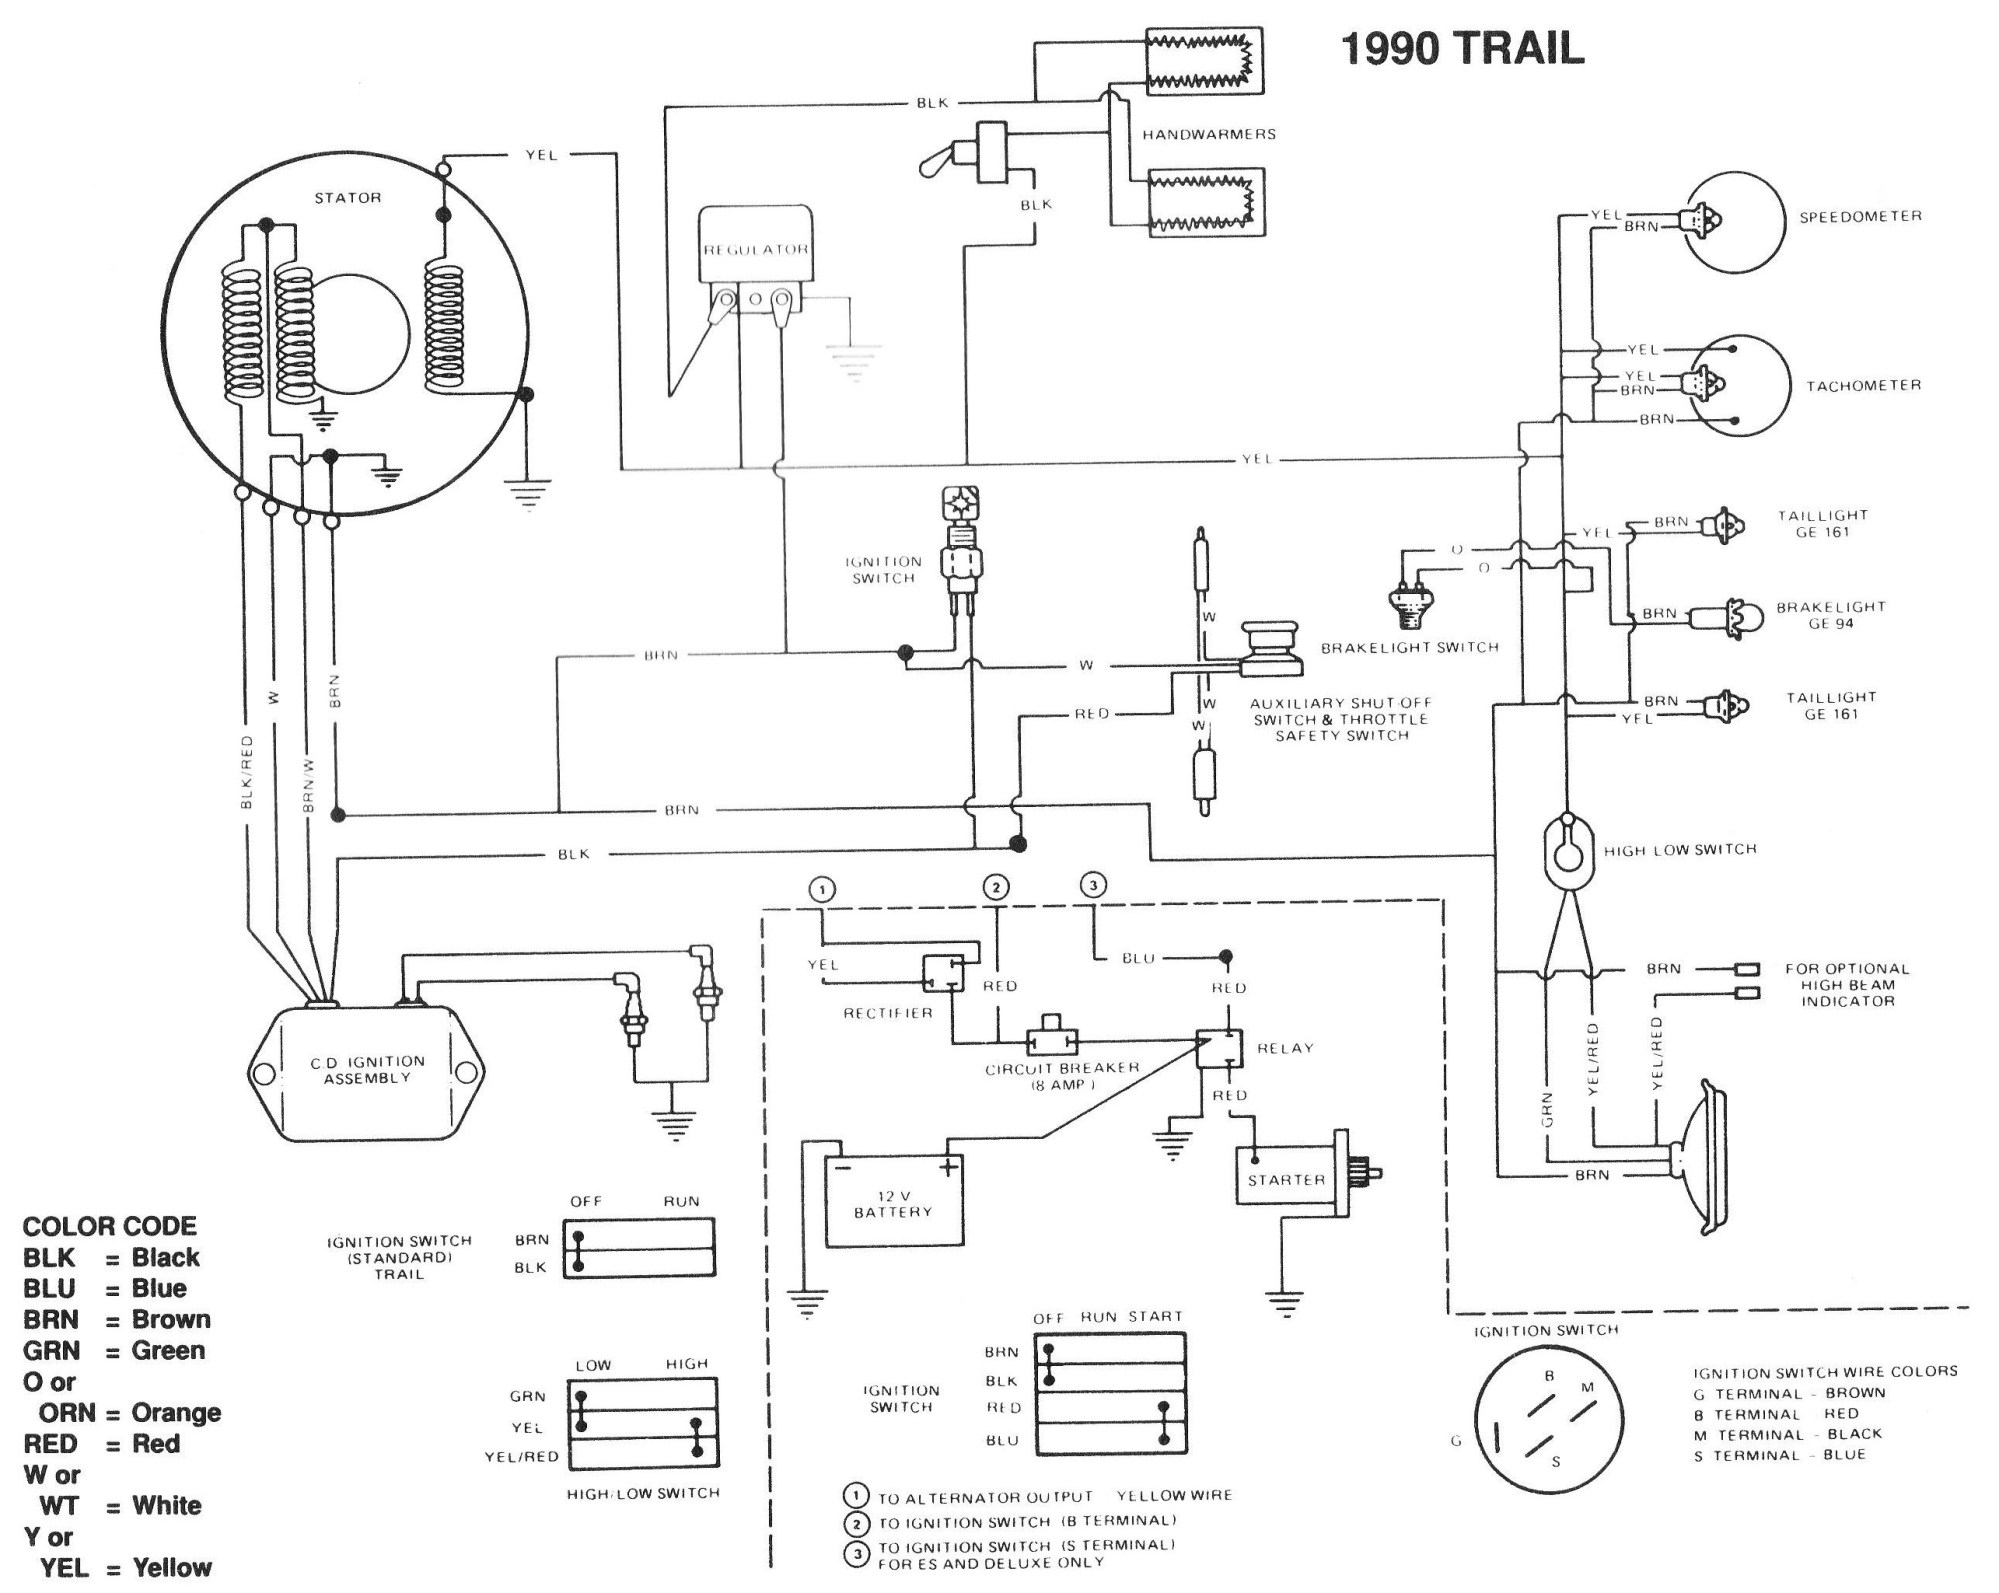 hight resolution of polaris xlt 600 wiring diagram wiring harness wiring diagram 11 18 580 jpeg 88kb air handler and condenser wiring please help wiring jpg